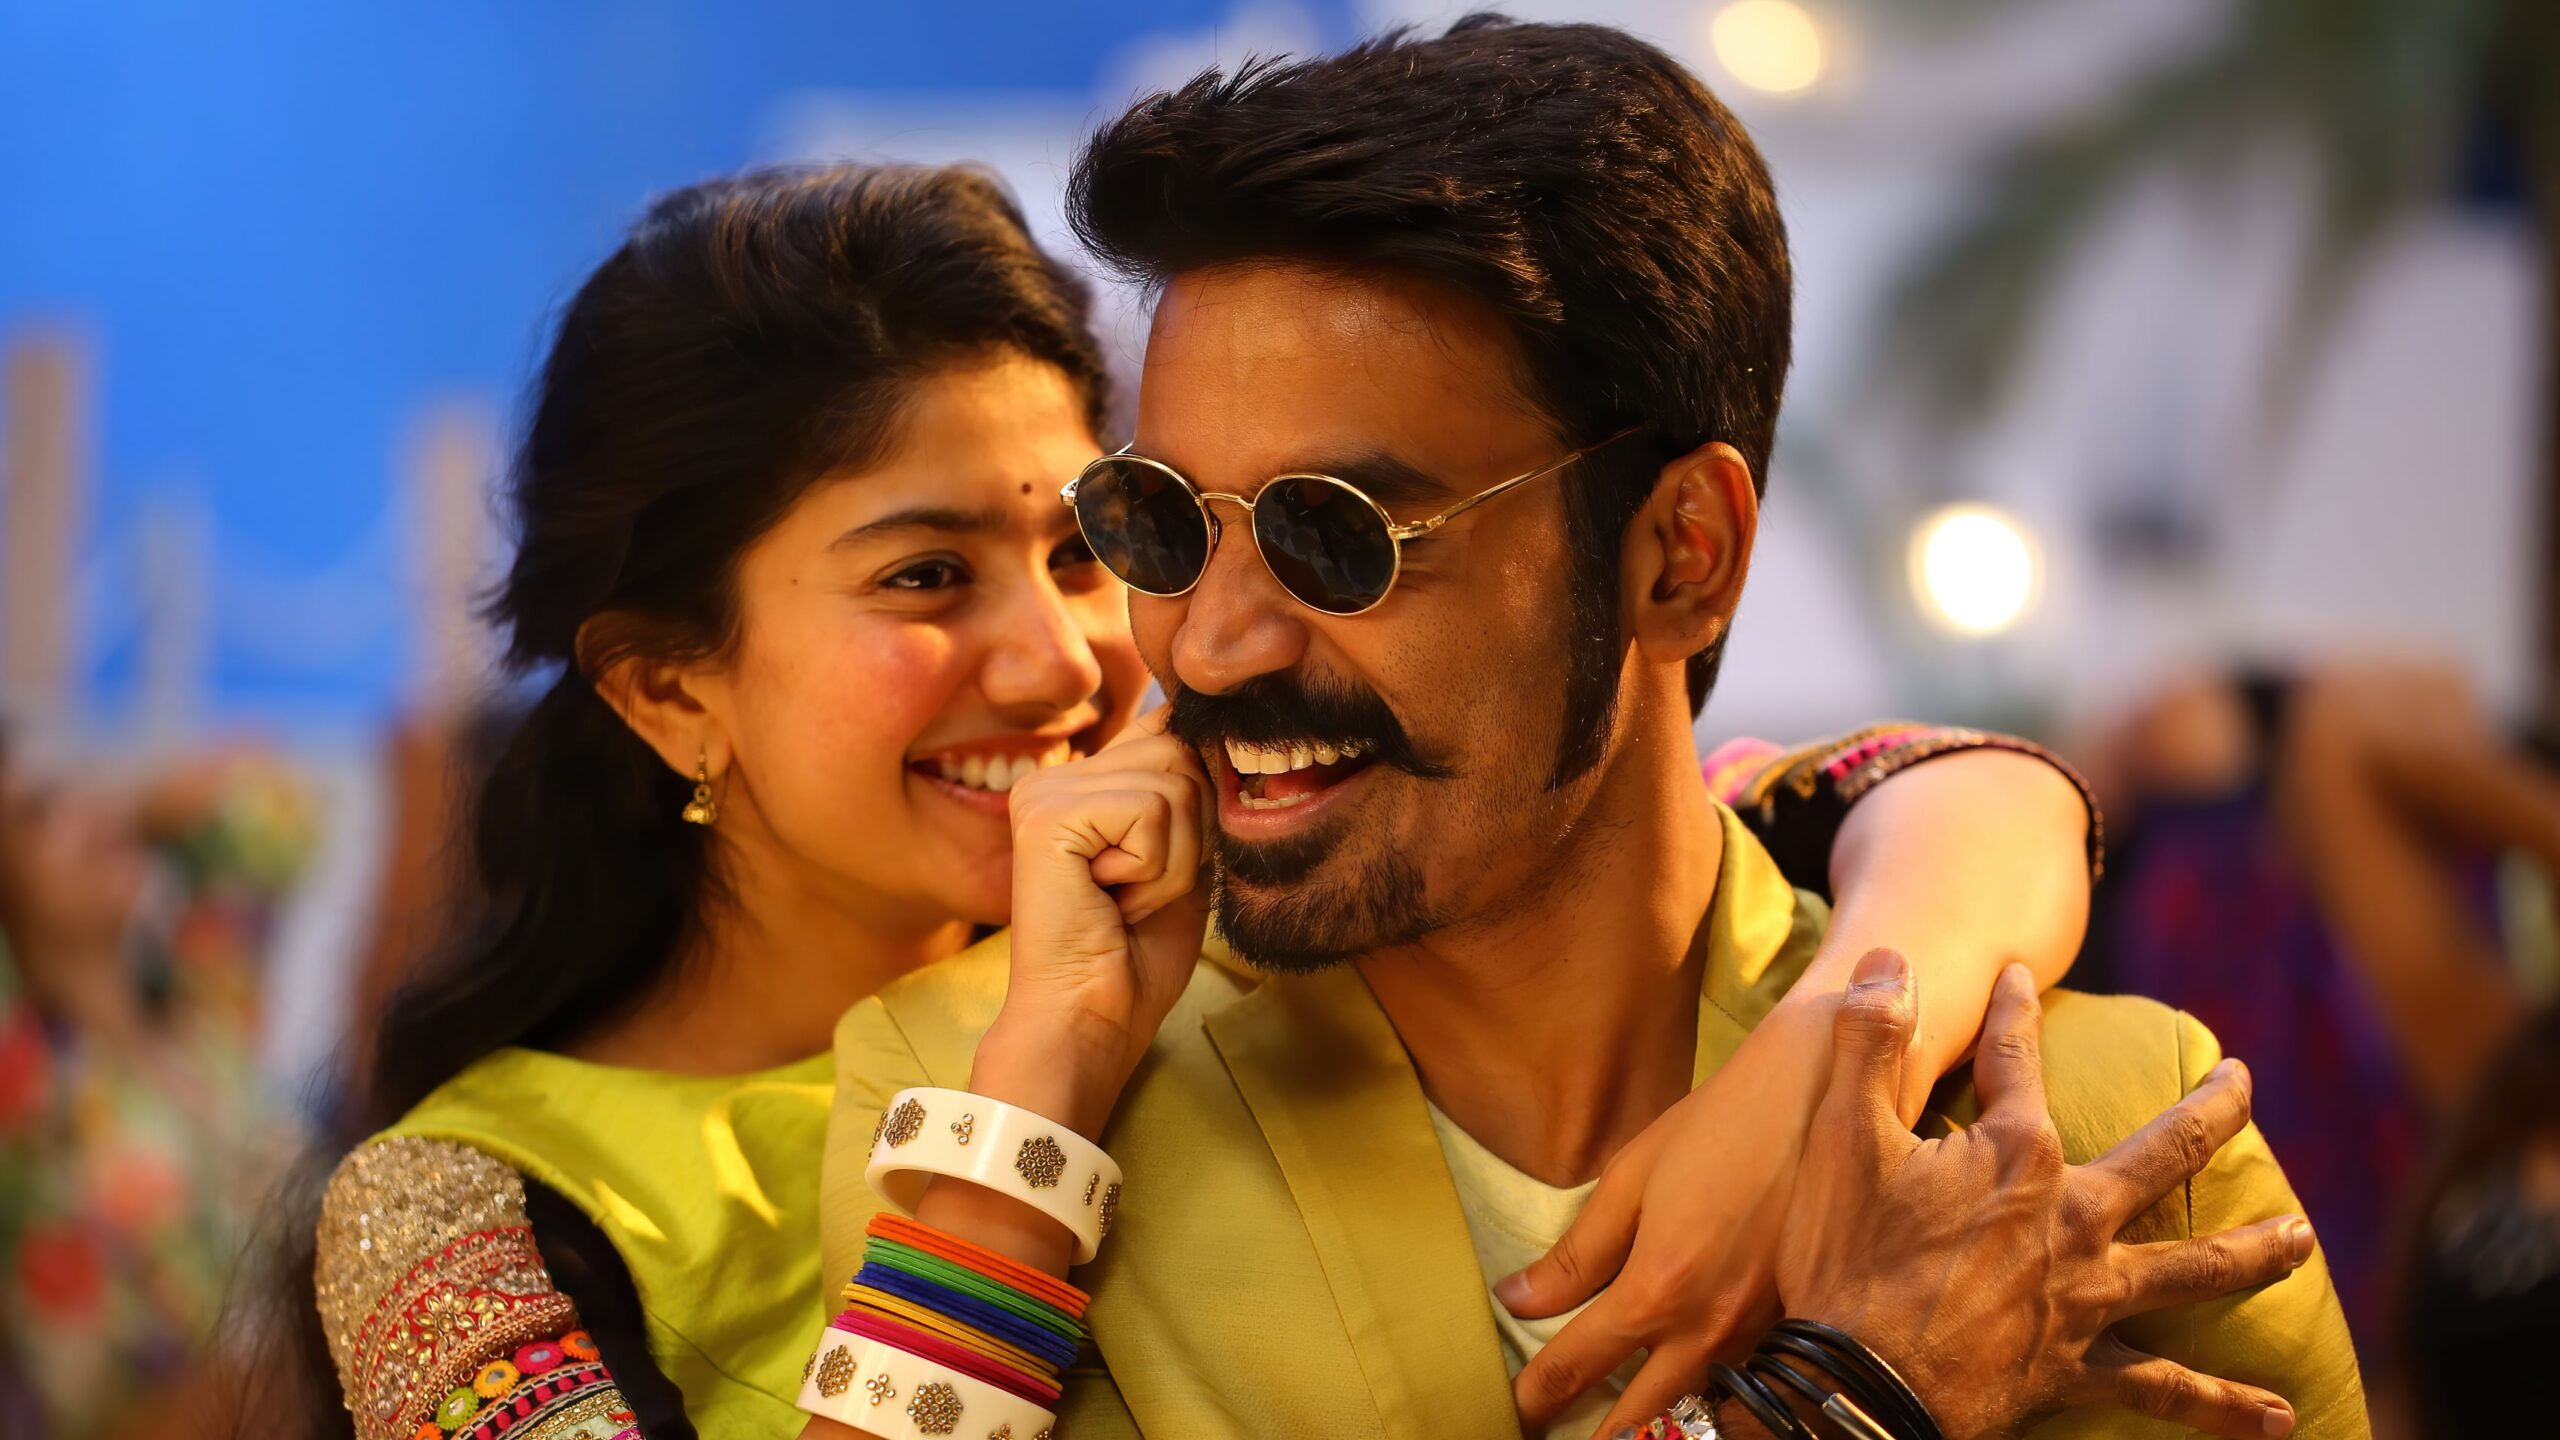 Maari 2 Movie Streaming Online Watch on Disney Plus Hotstar, MX Player, iTunes